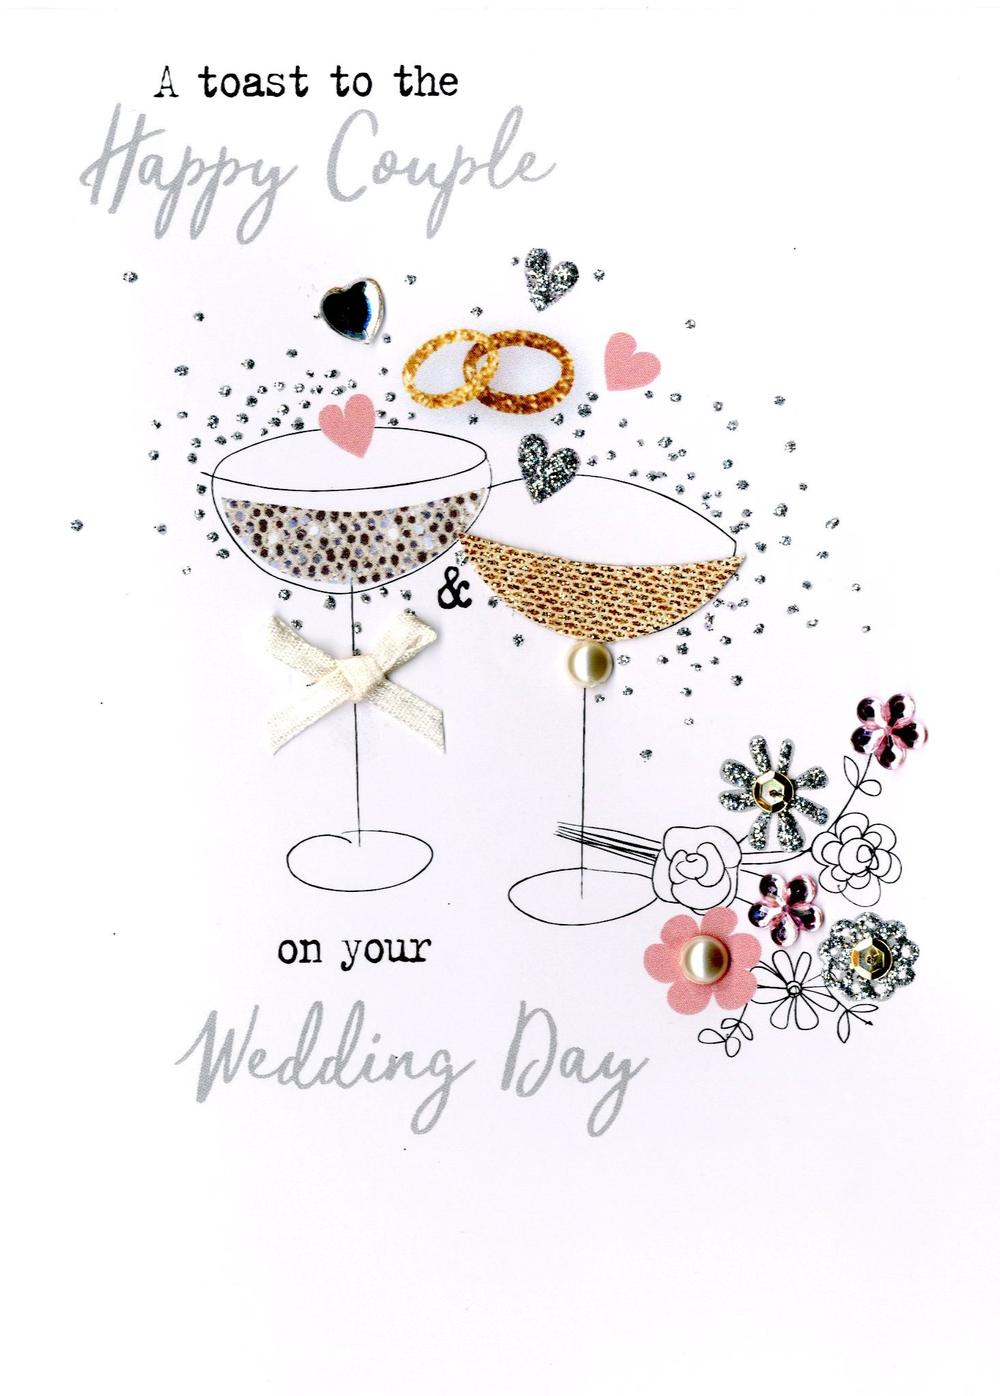 Happy Couple Wedding Day Irresistible Greeting Card